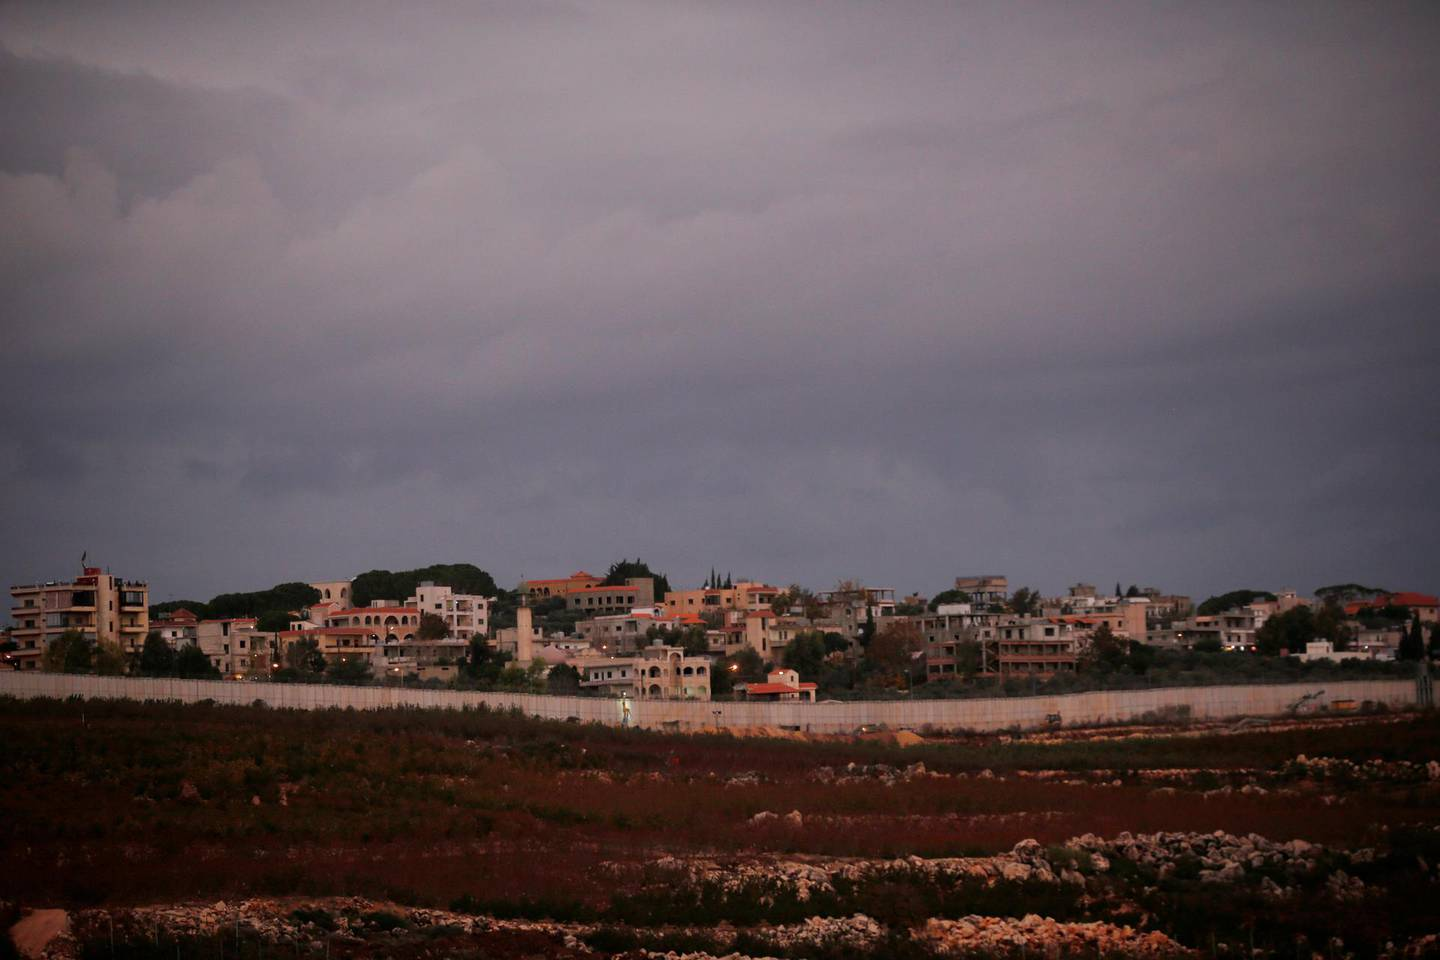 The Lebanese border village of Kfar Kila is seen behind the barrier wall as Israeli army personnel and heavy machinery work on the Israeli side of the border, in Israel's northernmost town Metula, early morning December 5, 2018.